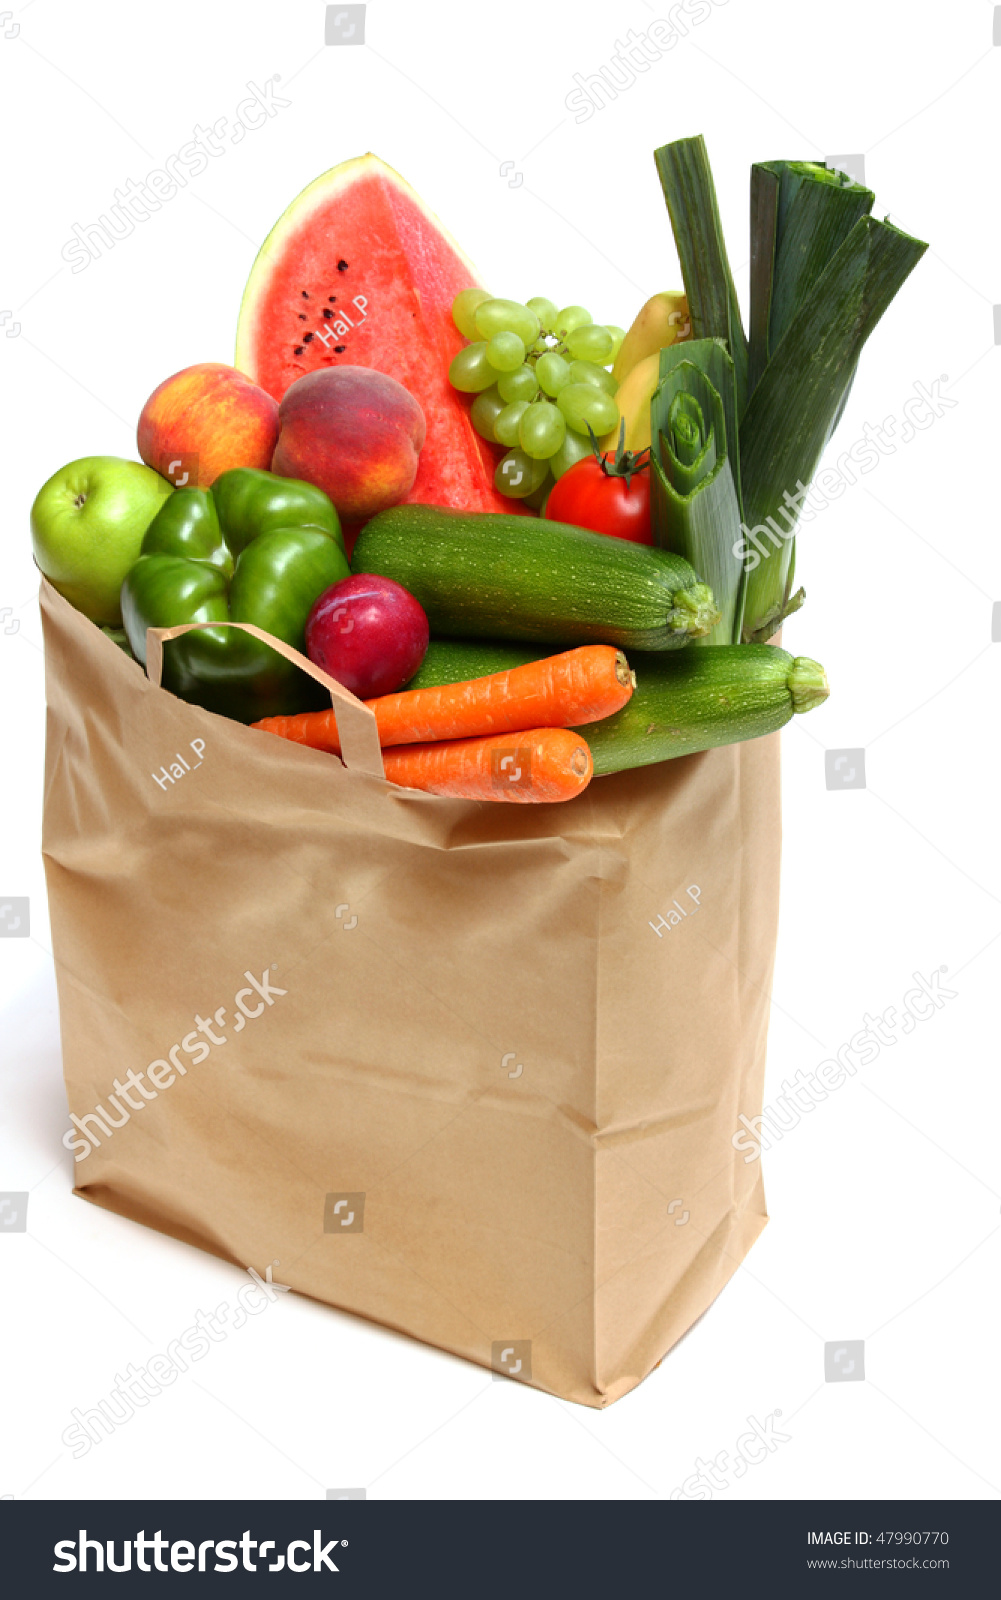 Grocery Bag Full Healthy Fruits Vegetables Stock Photo 47990770 ...